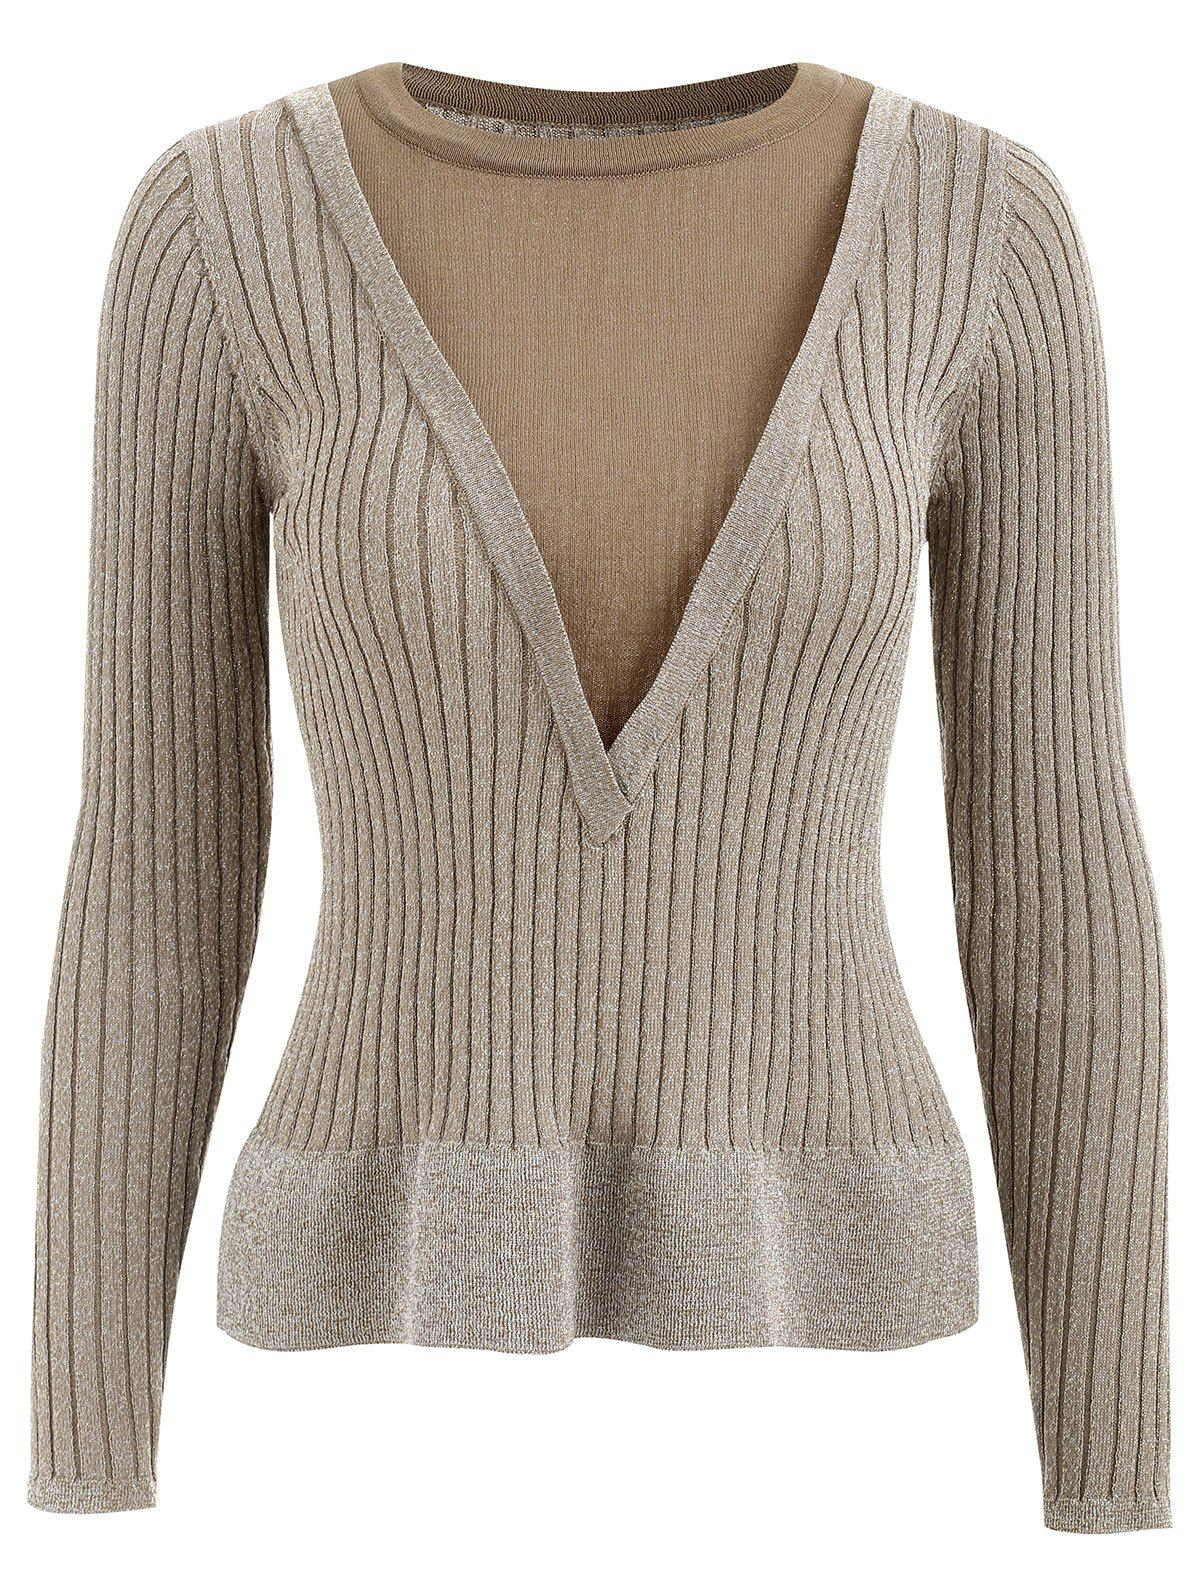 Chic False Two Piece Glitter Knitwear